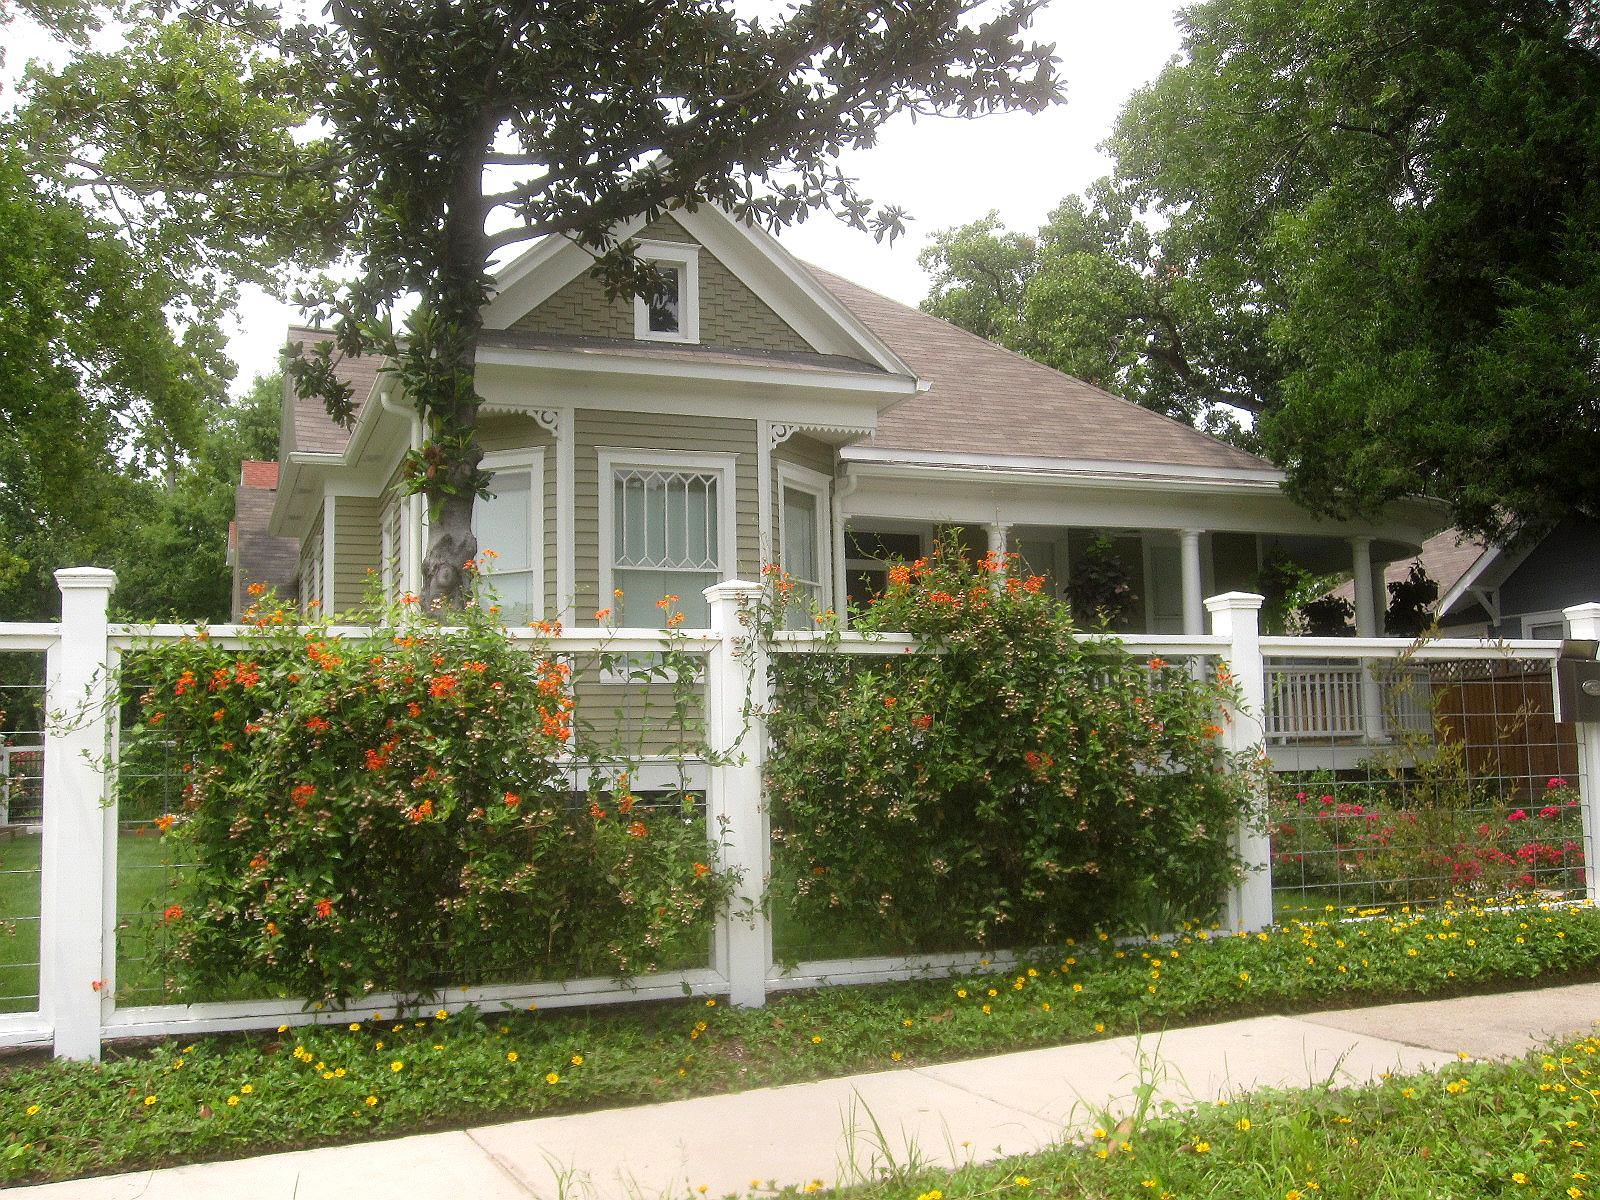 The other houston bungalow front yard garden ideas for Front garden design